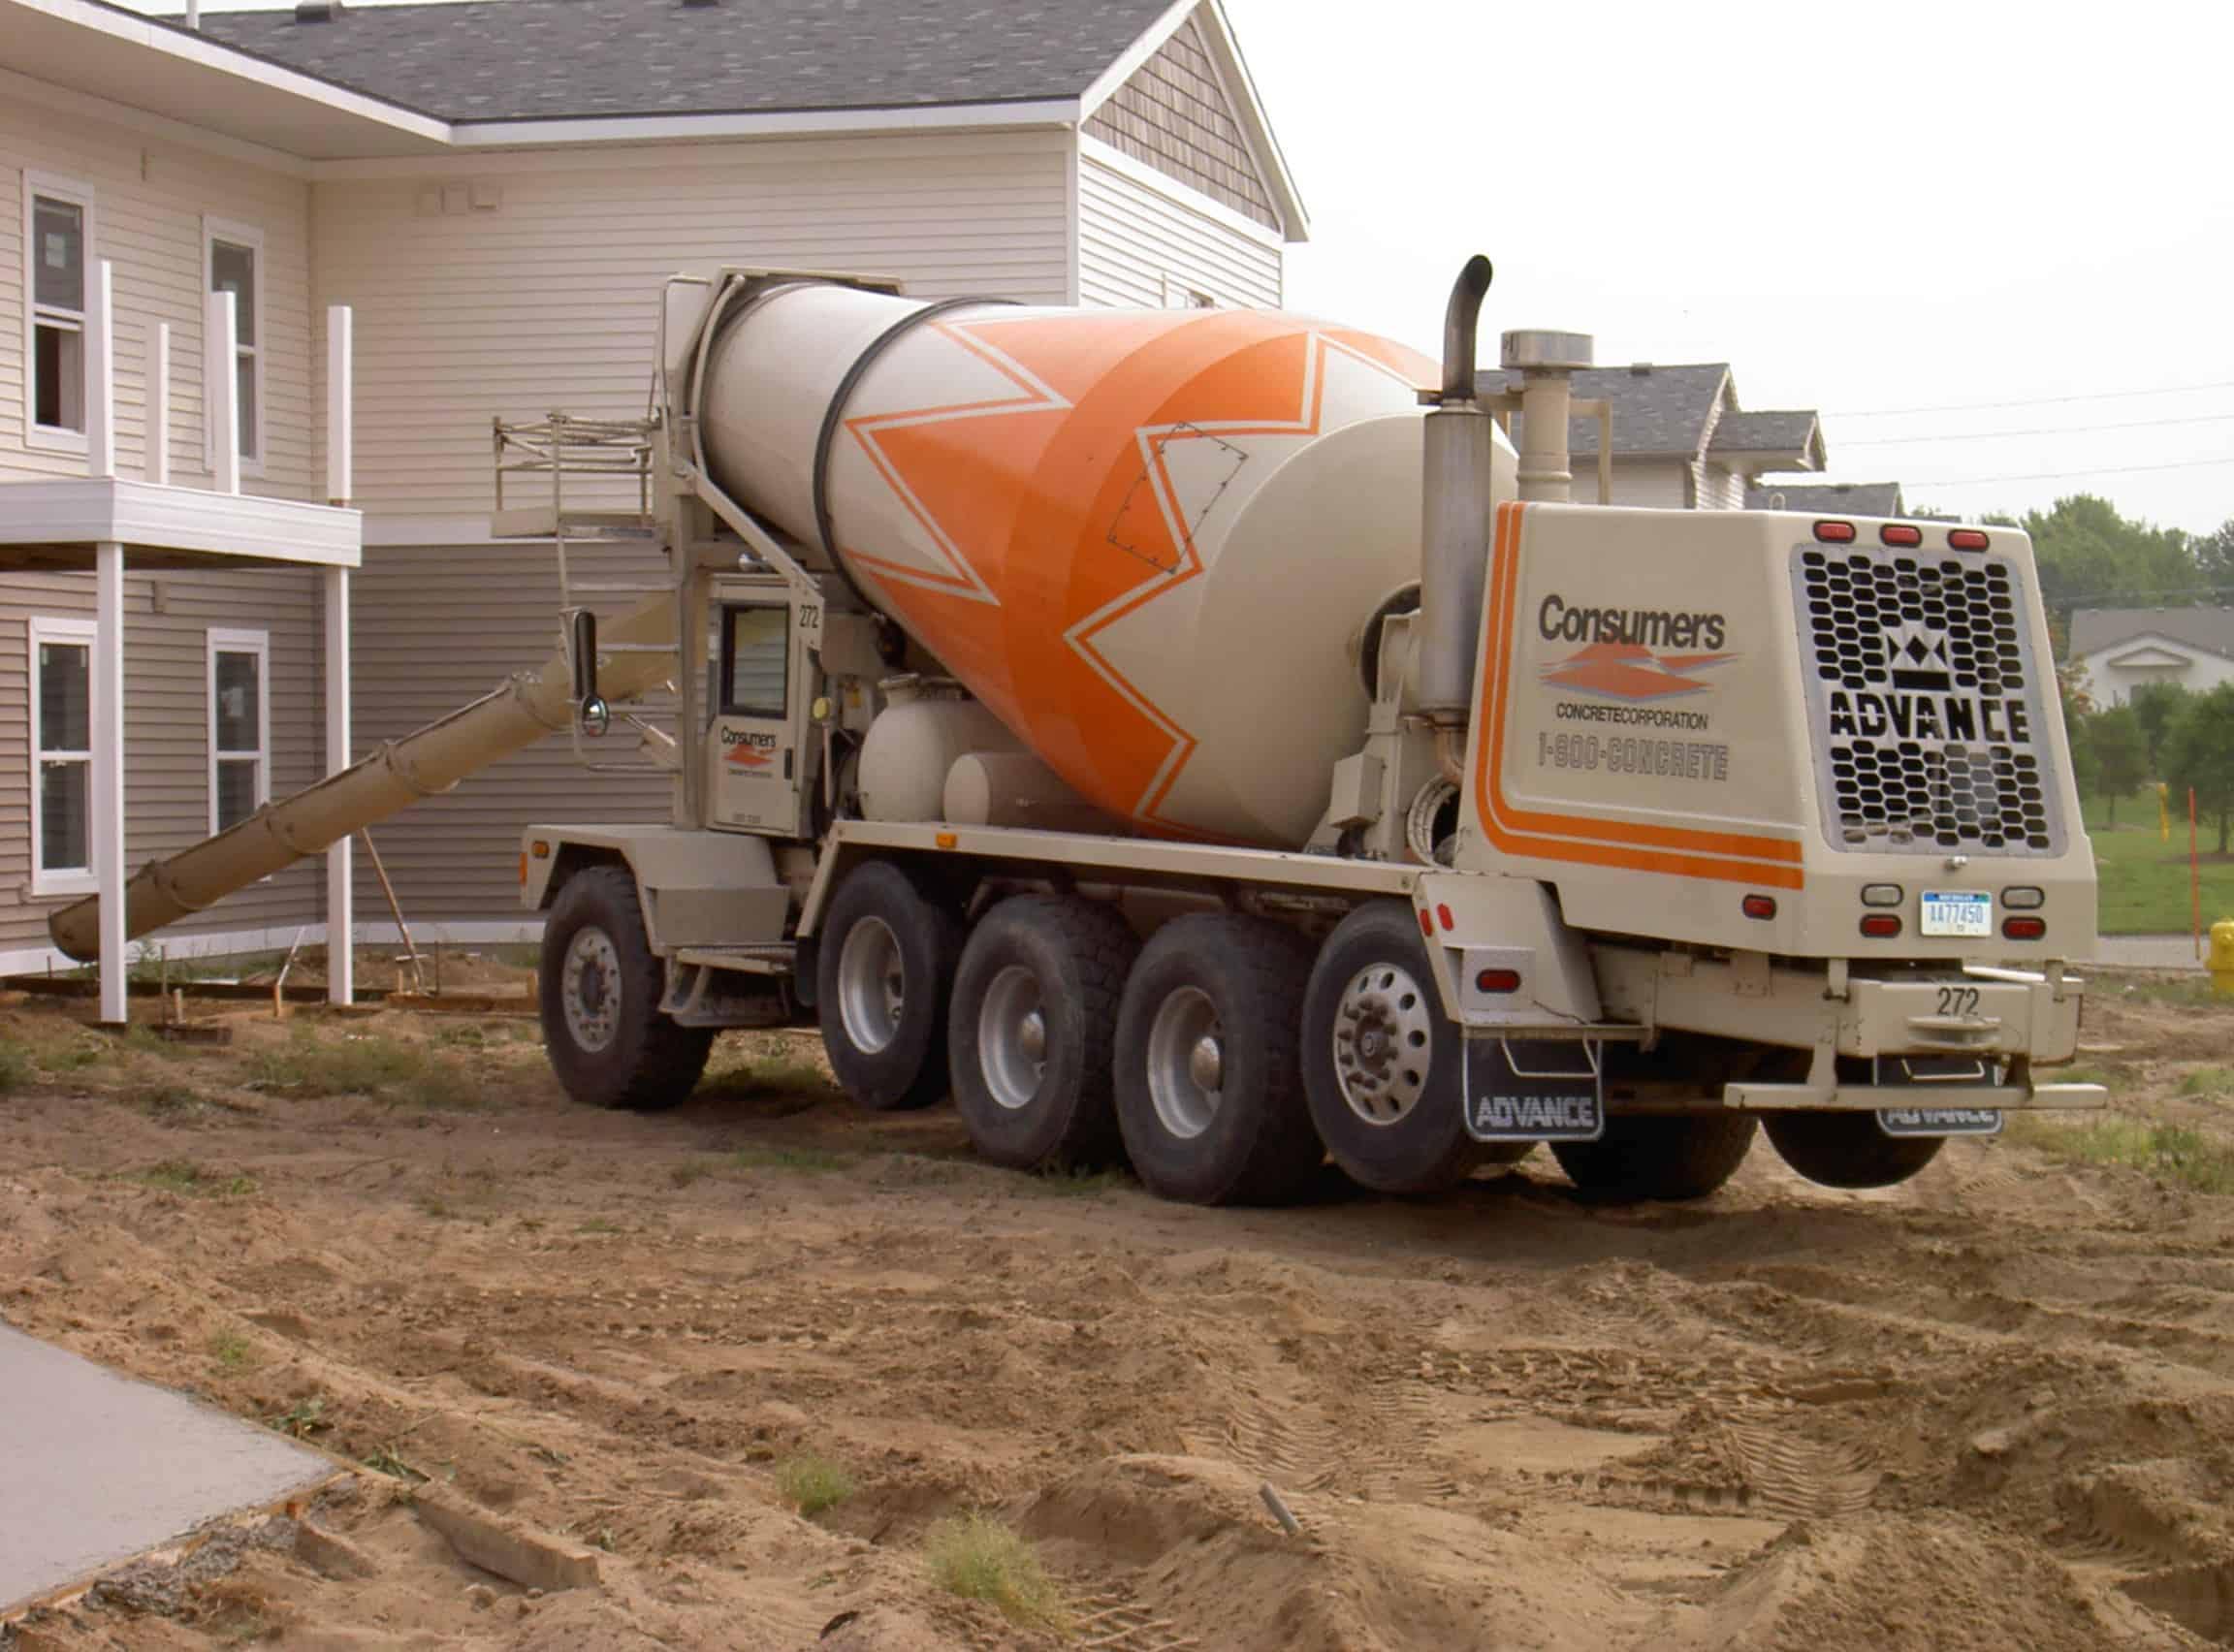 Concrete Grand Rapids  Serving up fresh daily by Consumers